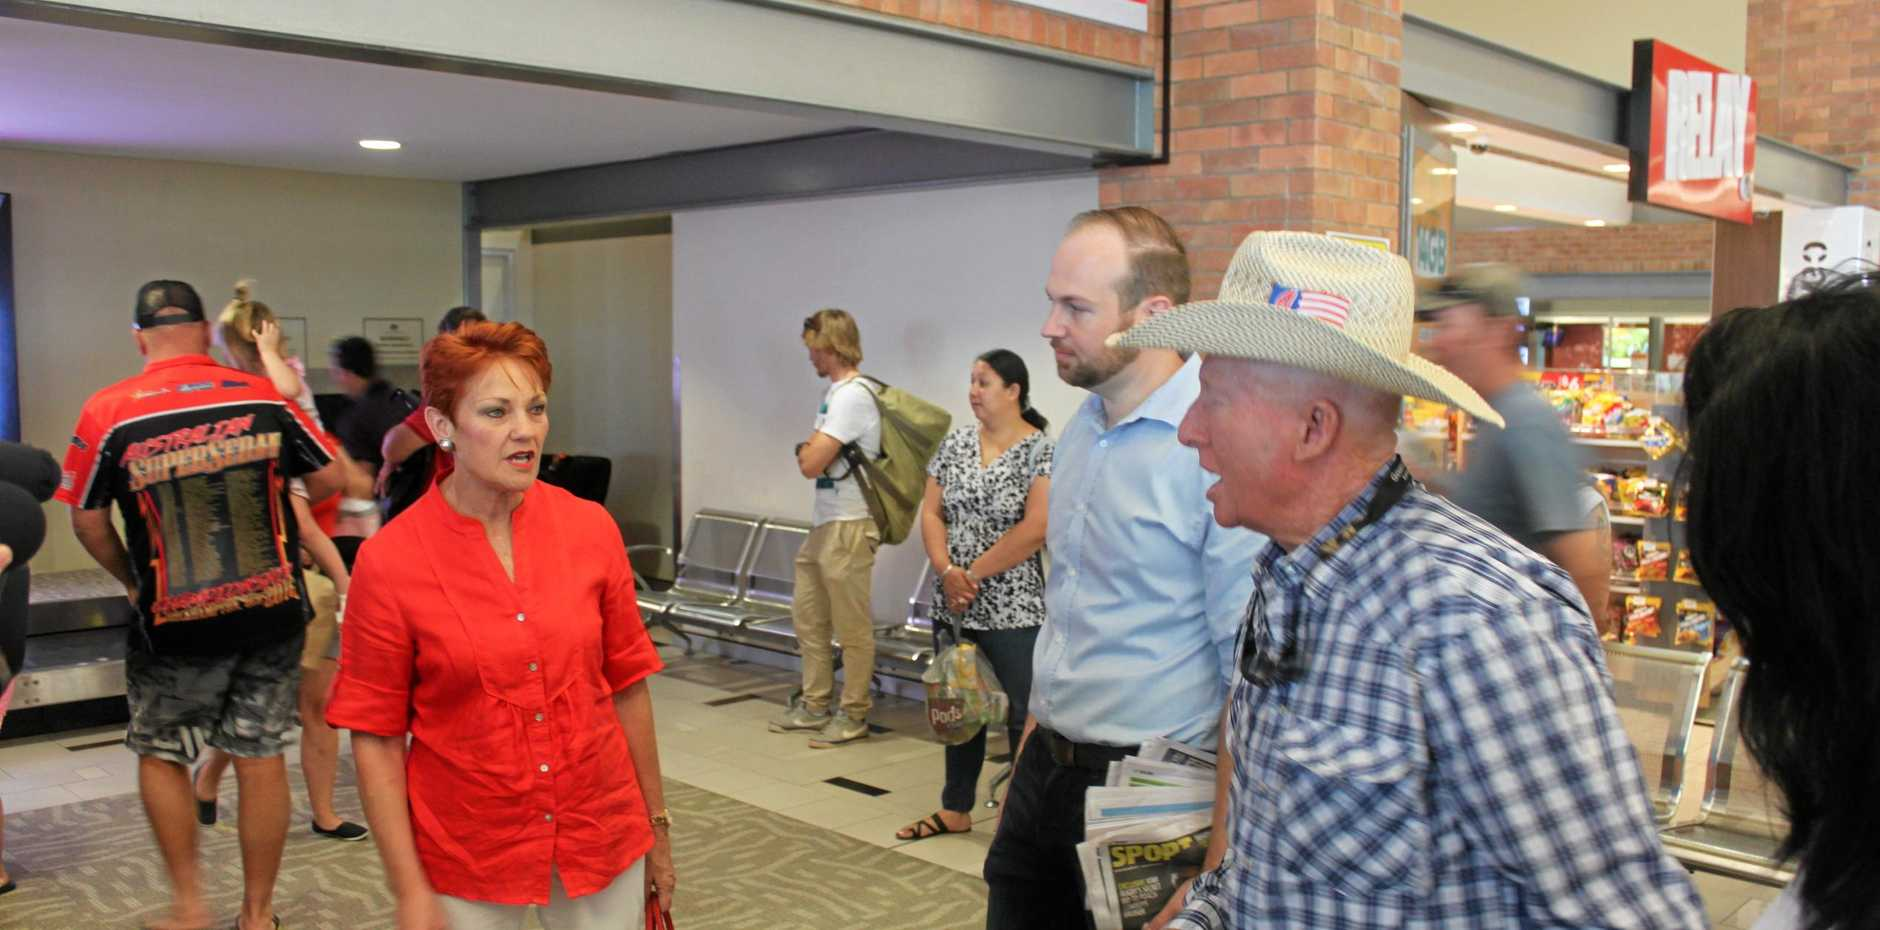 CQ VISIT: Pauline Hanson is in CQ to listen to the concerns of locals and push her plans for the region.